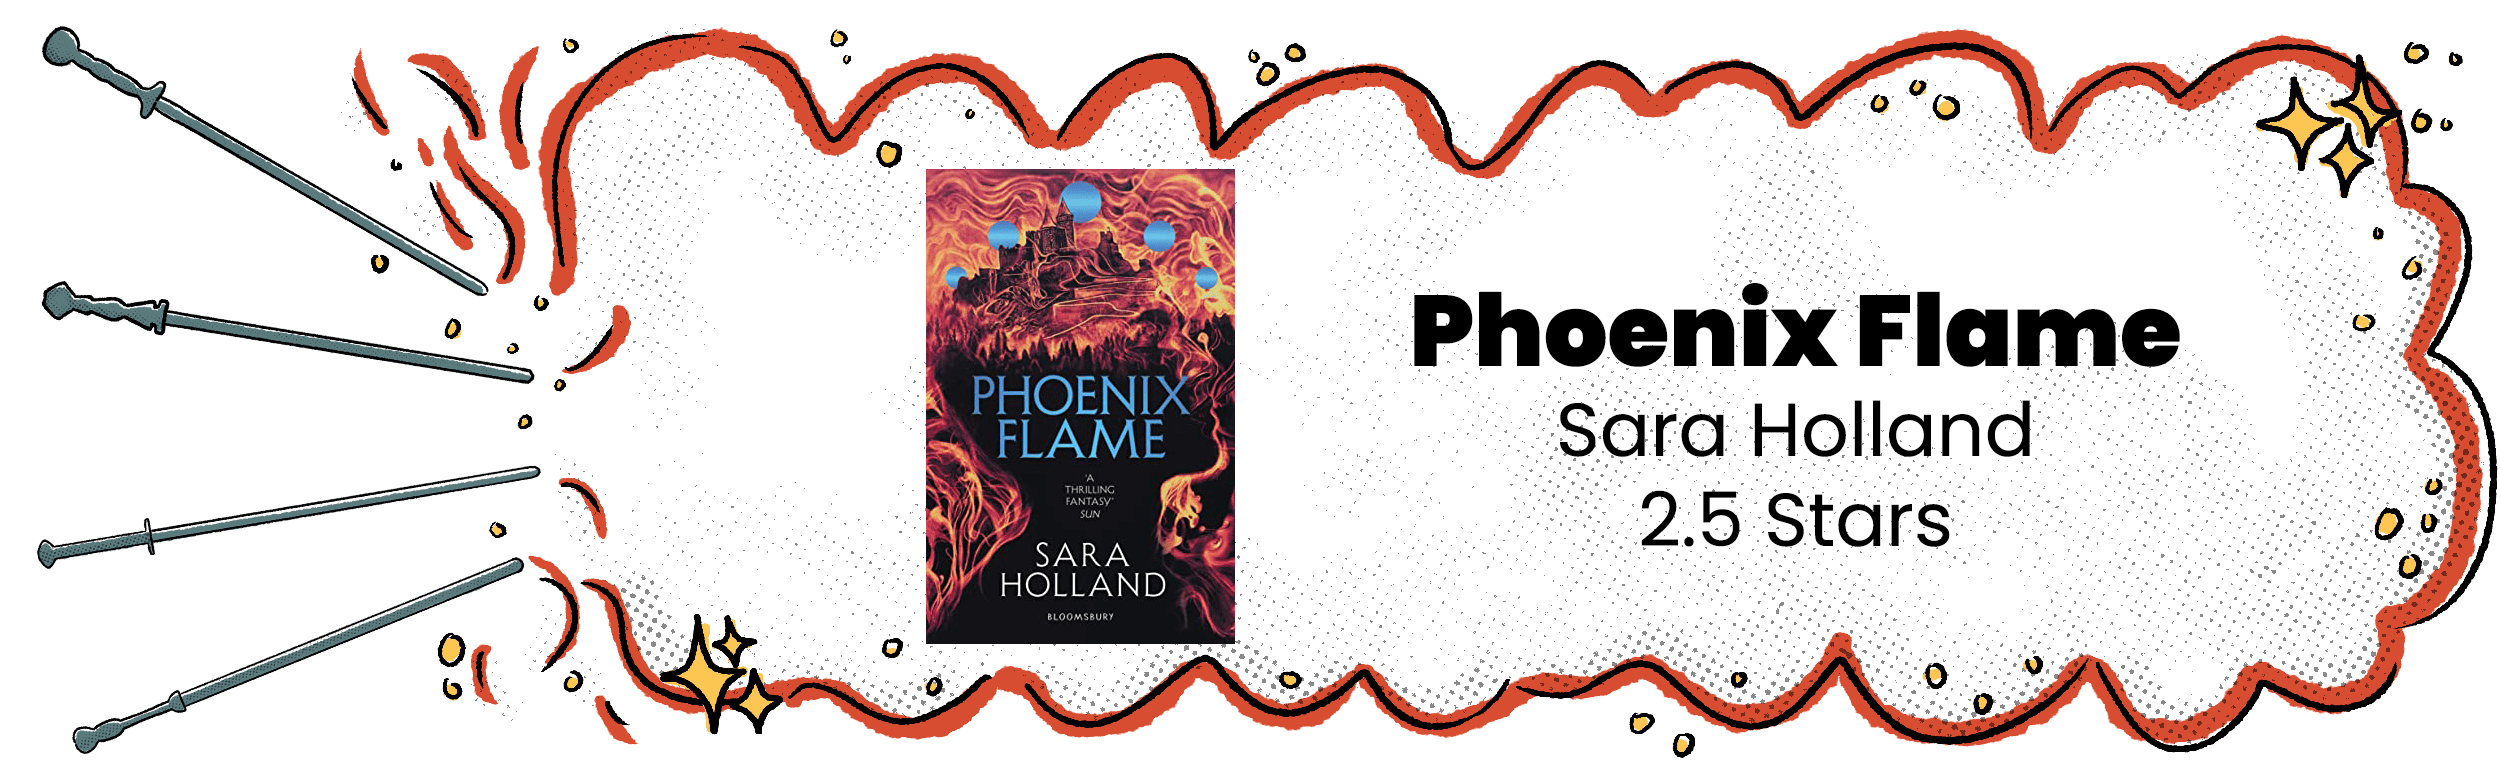 Phoenix Flame Review Banner with 2.5 Star Rating